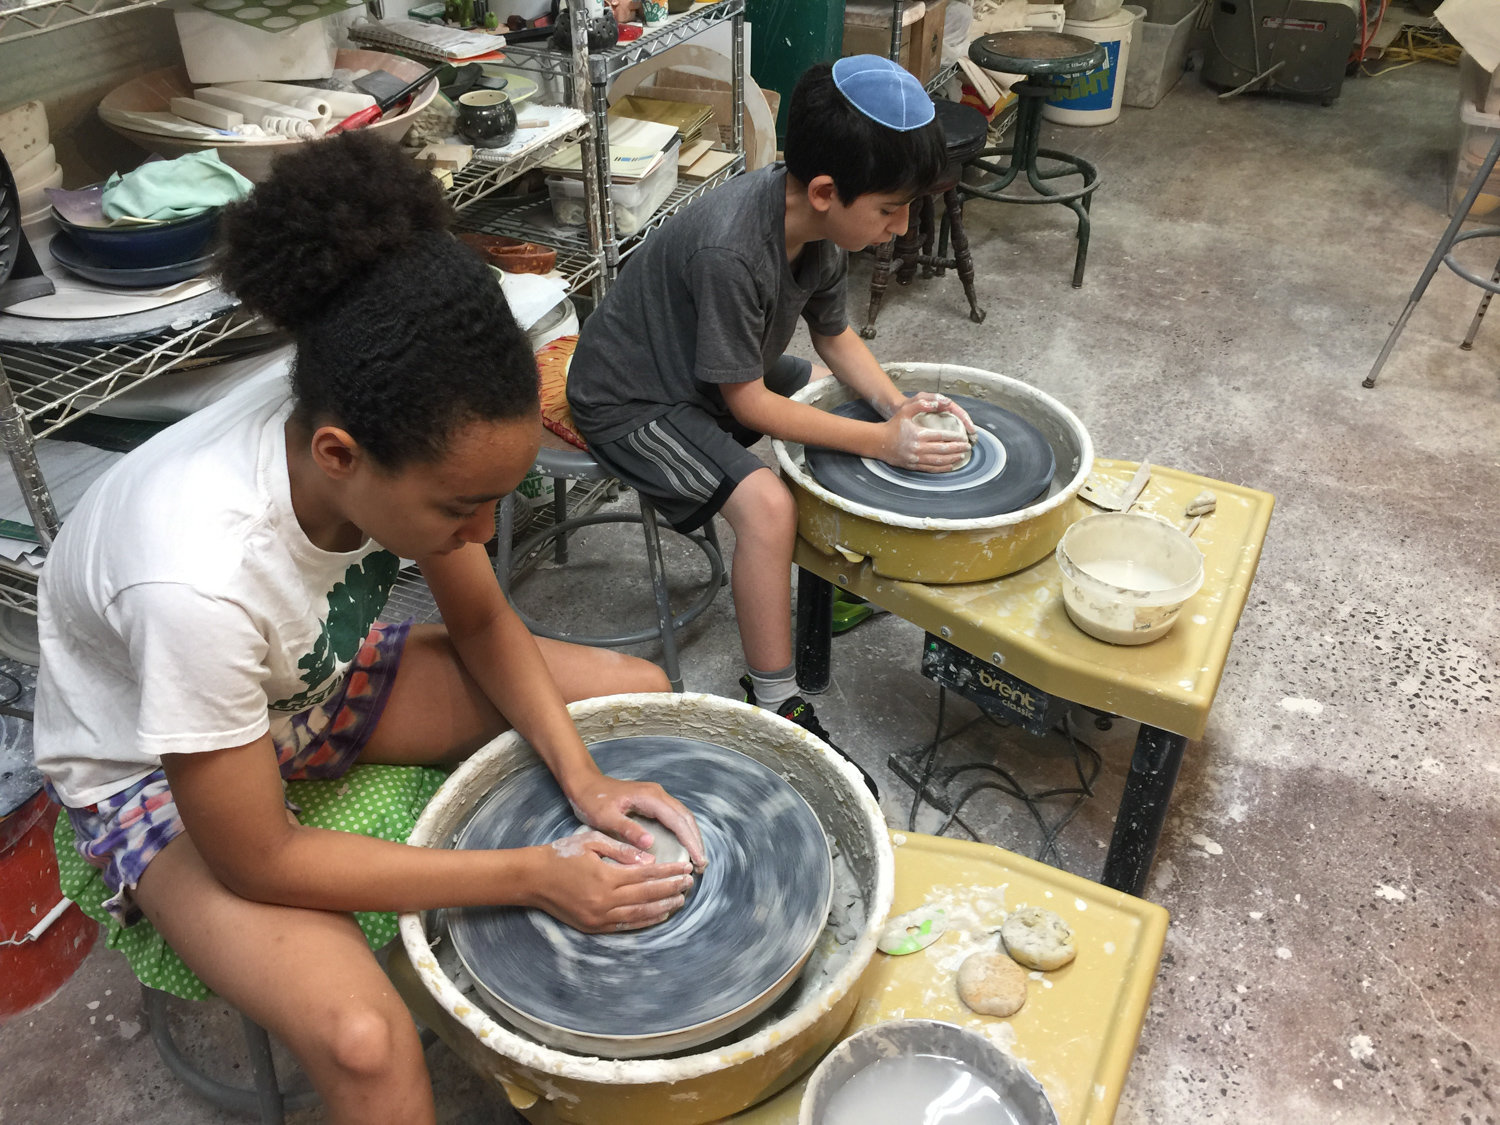 After going back to school for an art degree at Lehman College, Dan Harelick discovered his love of ceramics. After he graduated in 2012, he opened a studio in his Fieldston garage, sharing his passion with scores of students in the years since.